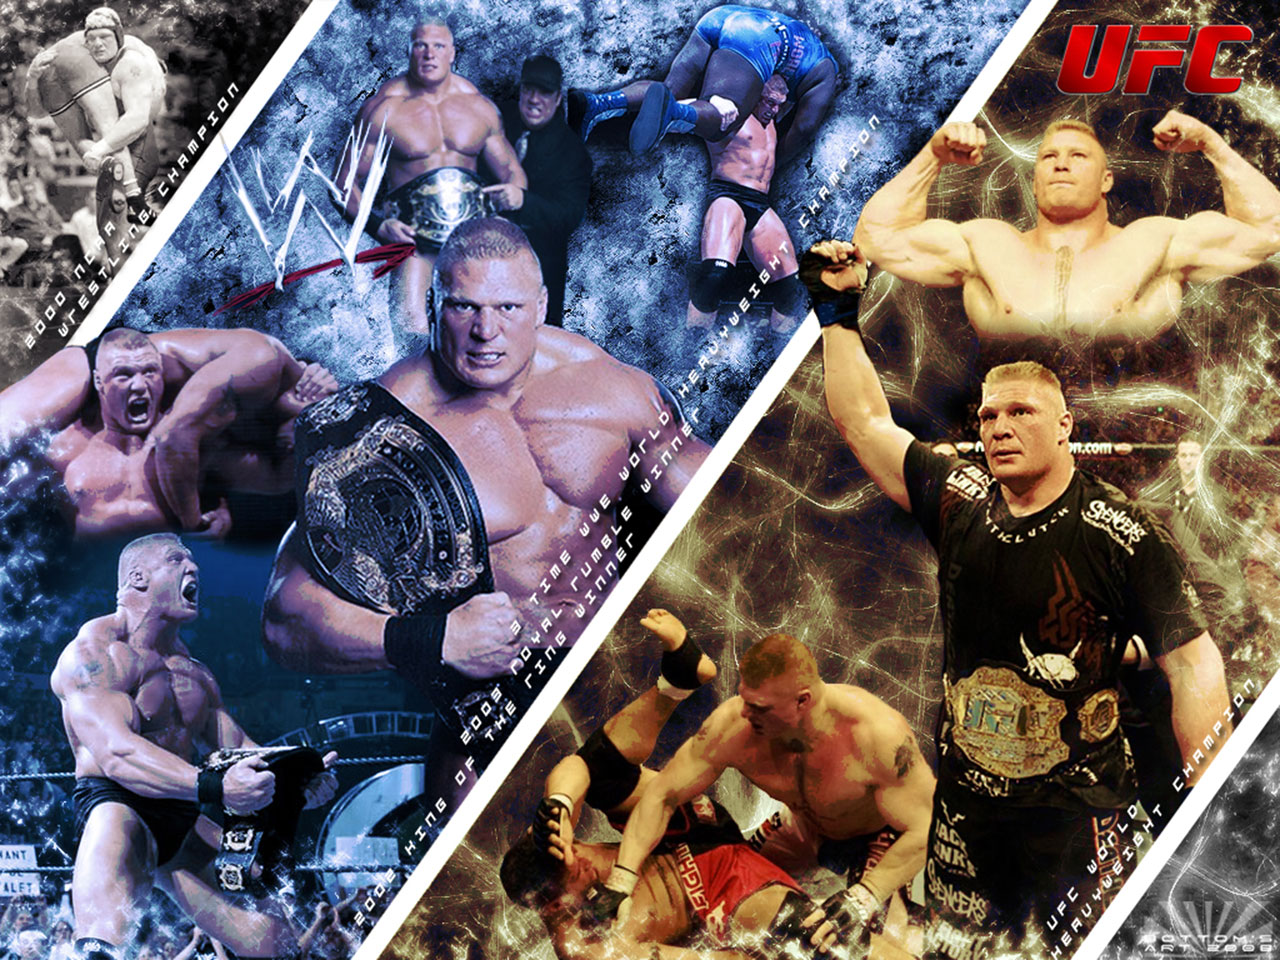 Brock Lesnar Wallpapers Cute Girls Celebrity Wallpaper 1280x960